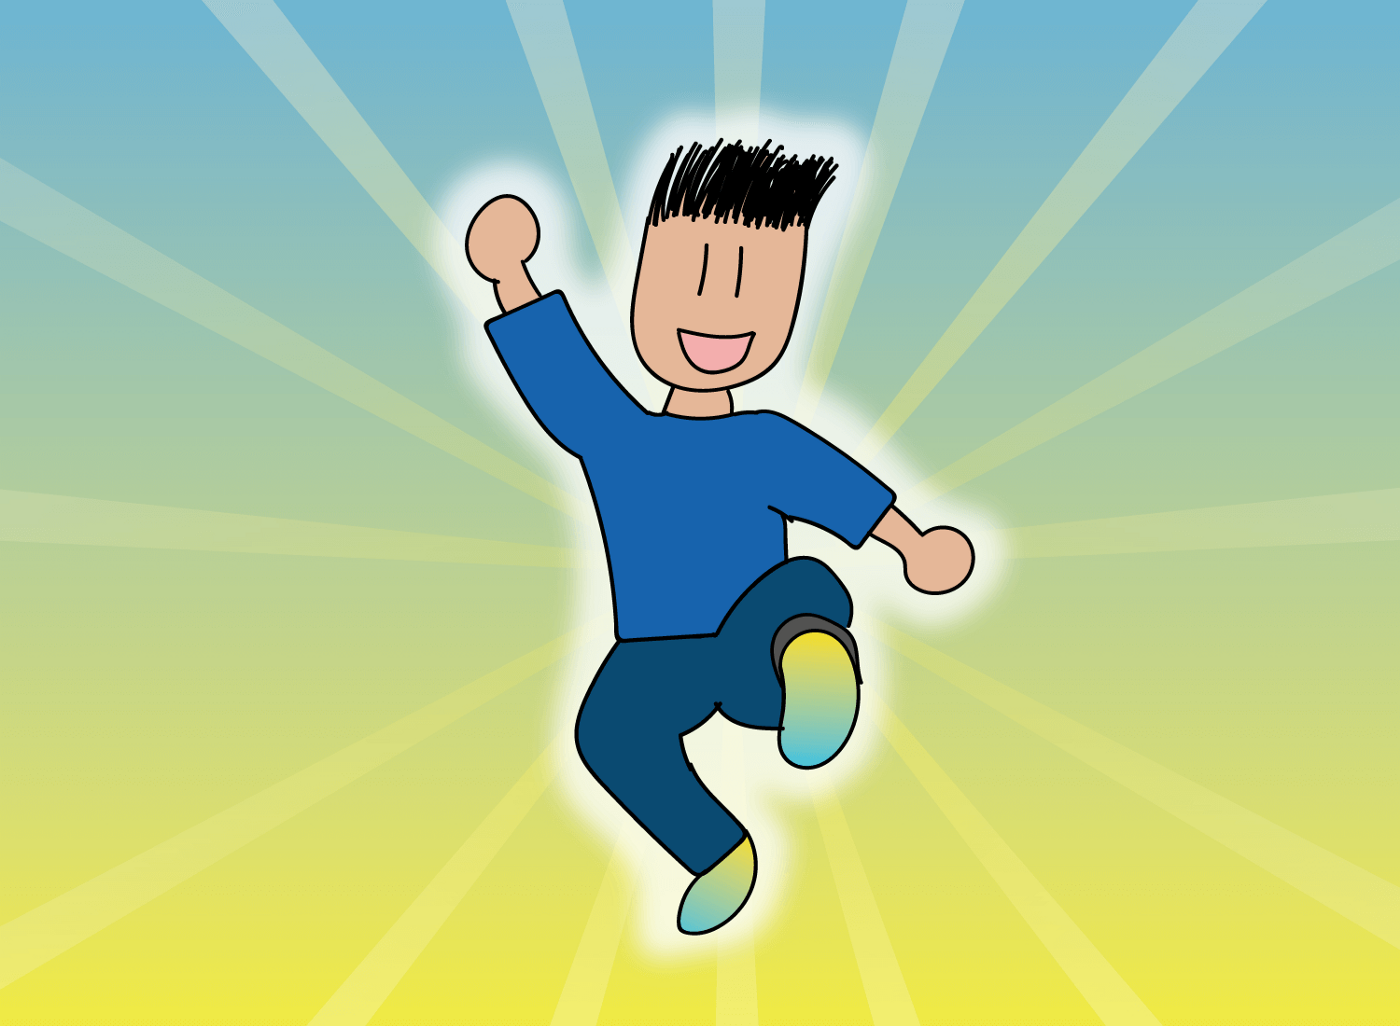 A smiling person jumps toward the viewer, fist raised triumphantly.